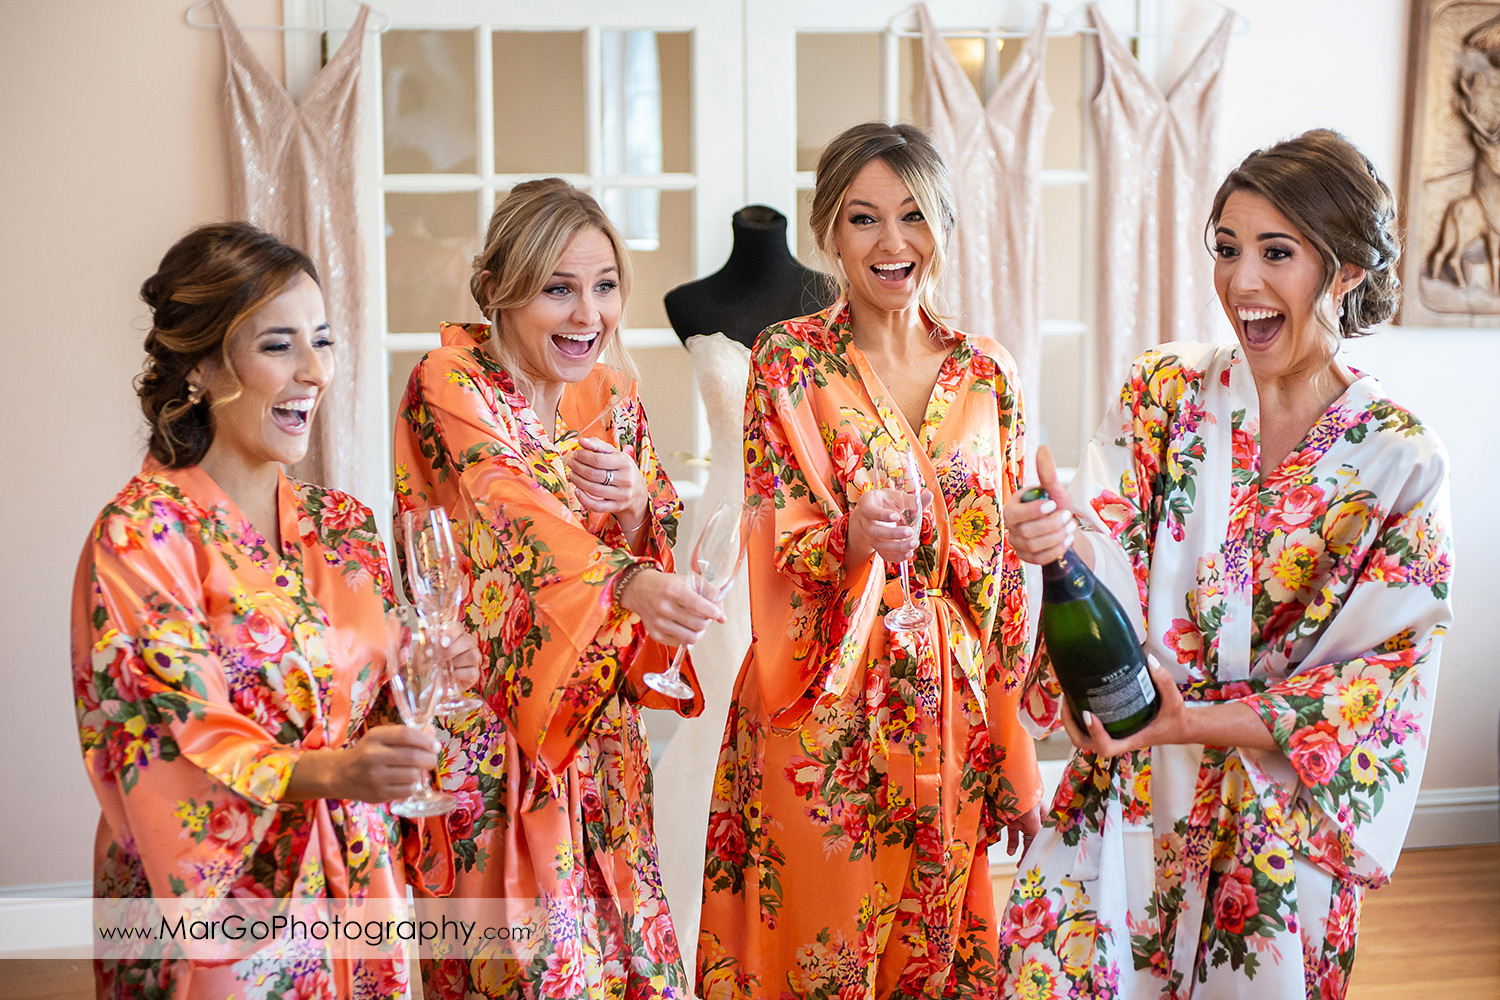 bride and bridesmaids in flower robes opening champagne bottle during getting ready in Walnut Creek